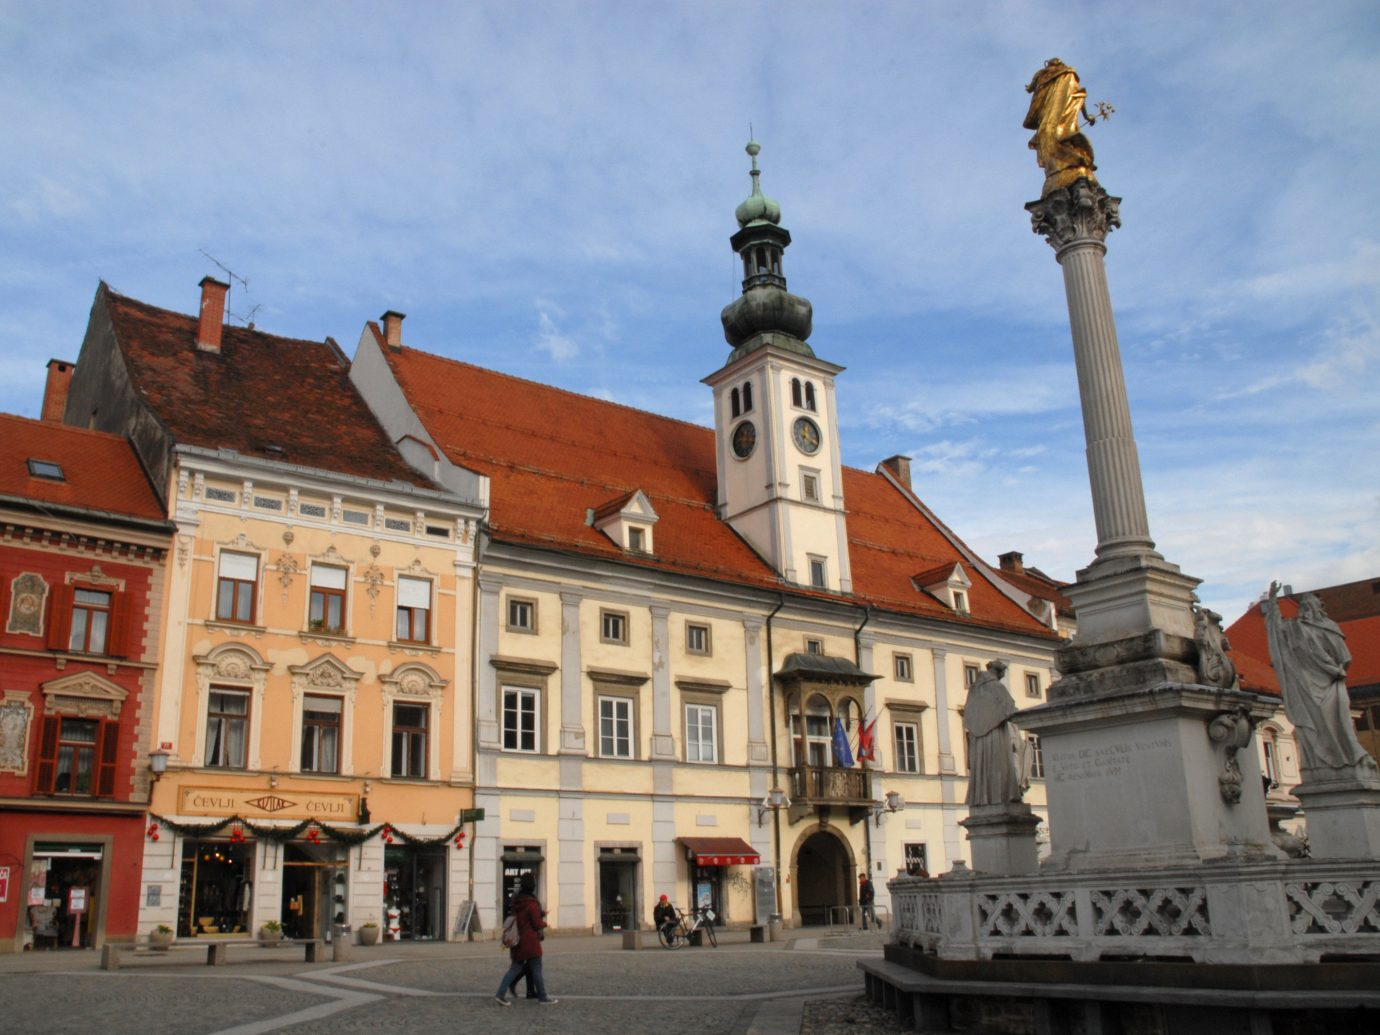 Trip Ideas Town landmark town square sky City château plaza building tourist attraction palace historic site monument facade seat of local government history medieval architecture metropolis tourism tower basilica middle ages